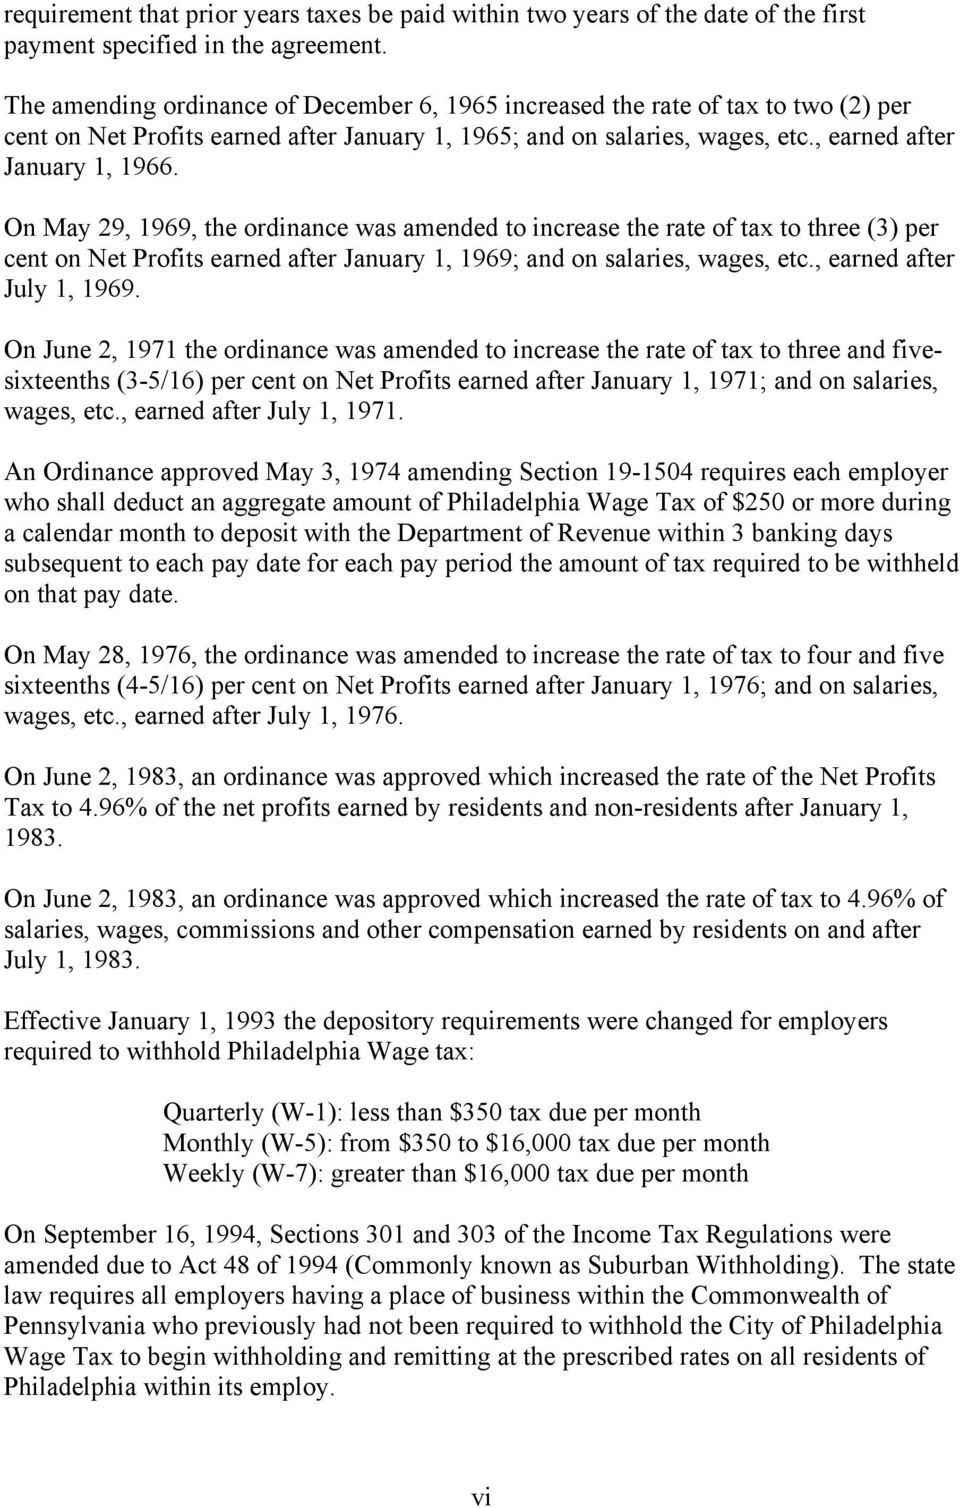 On May 29, 1969, the ordinance was amended to increase the rate of tax to three (3) per cent on Net Profits earned after January 1, 1969; and on salaries, wages, etc., earned after July 1, 1969.